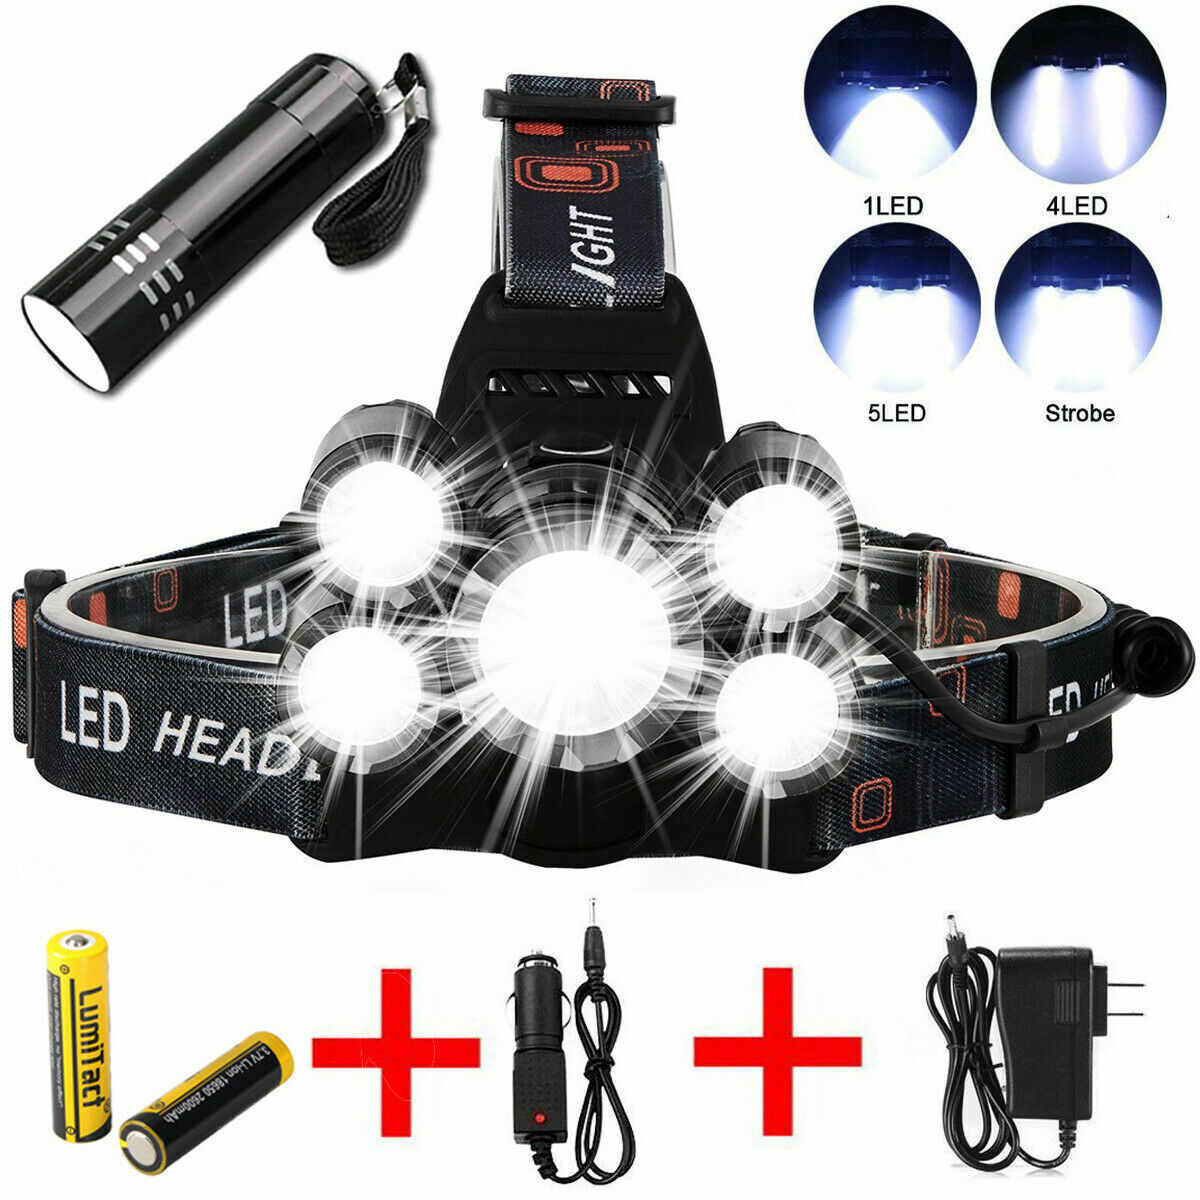 50000LM LED Headlamp 5 Head CREE XM-L T6 18650 Headlight Flashlight Torch Light Camping & Hiking